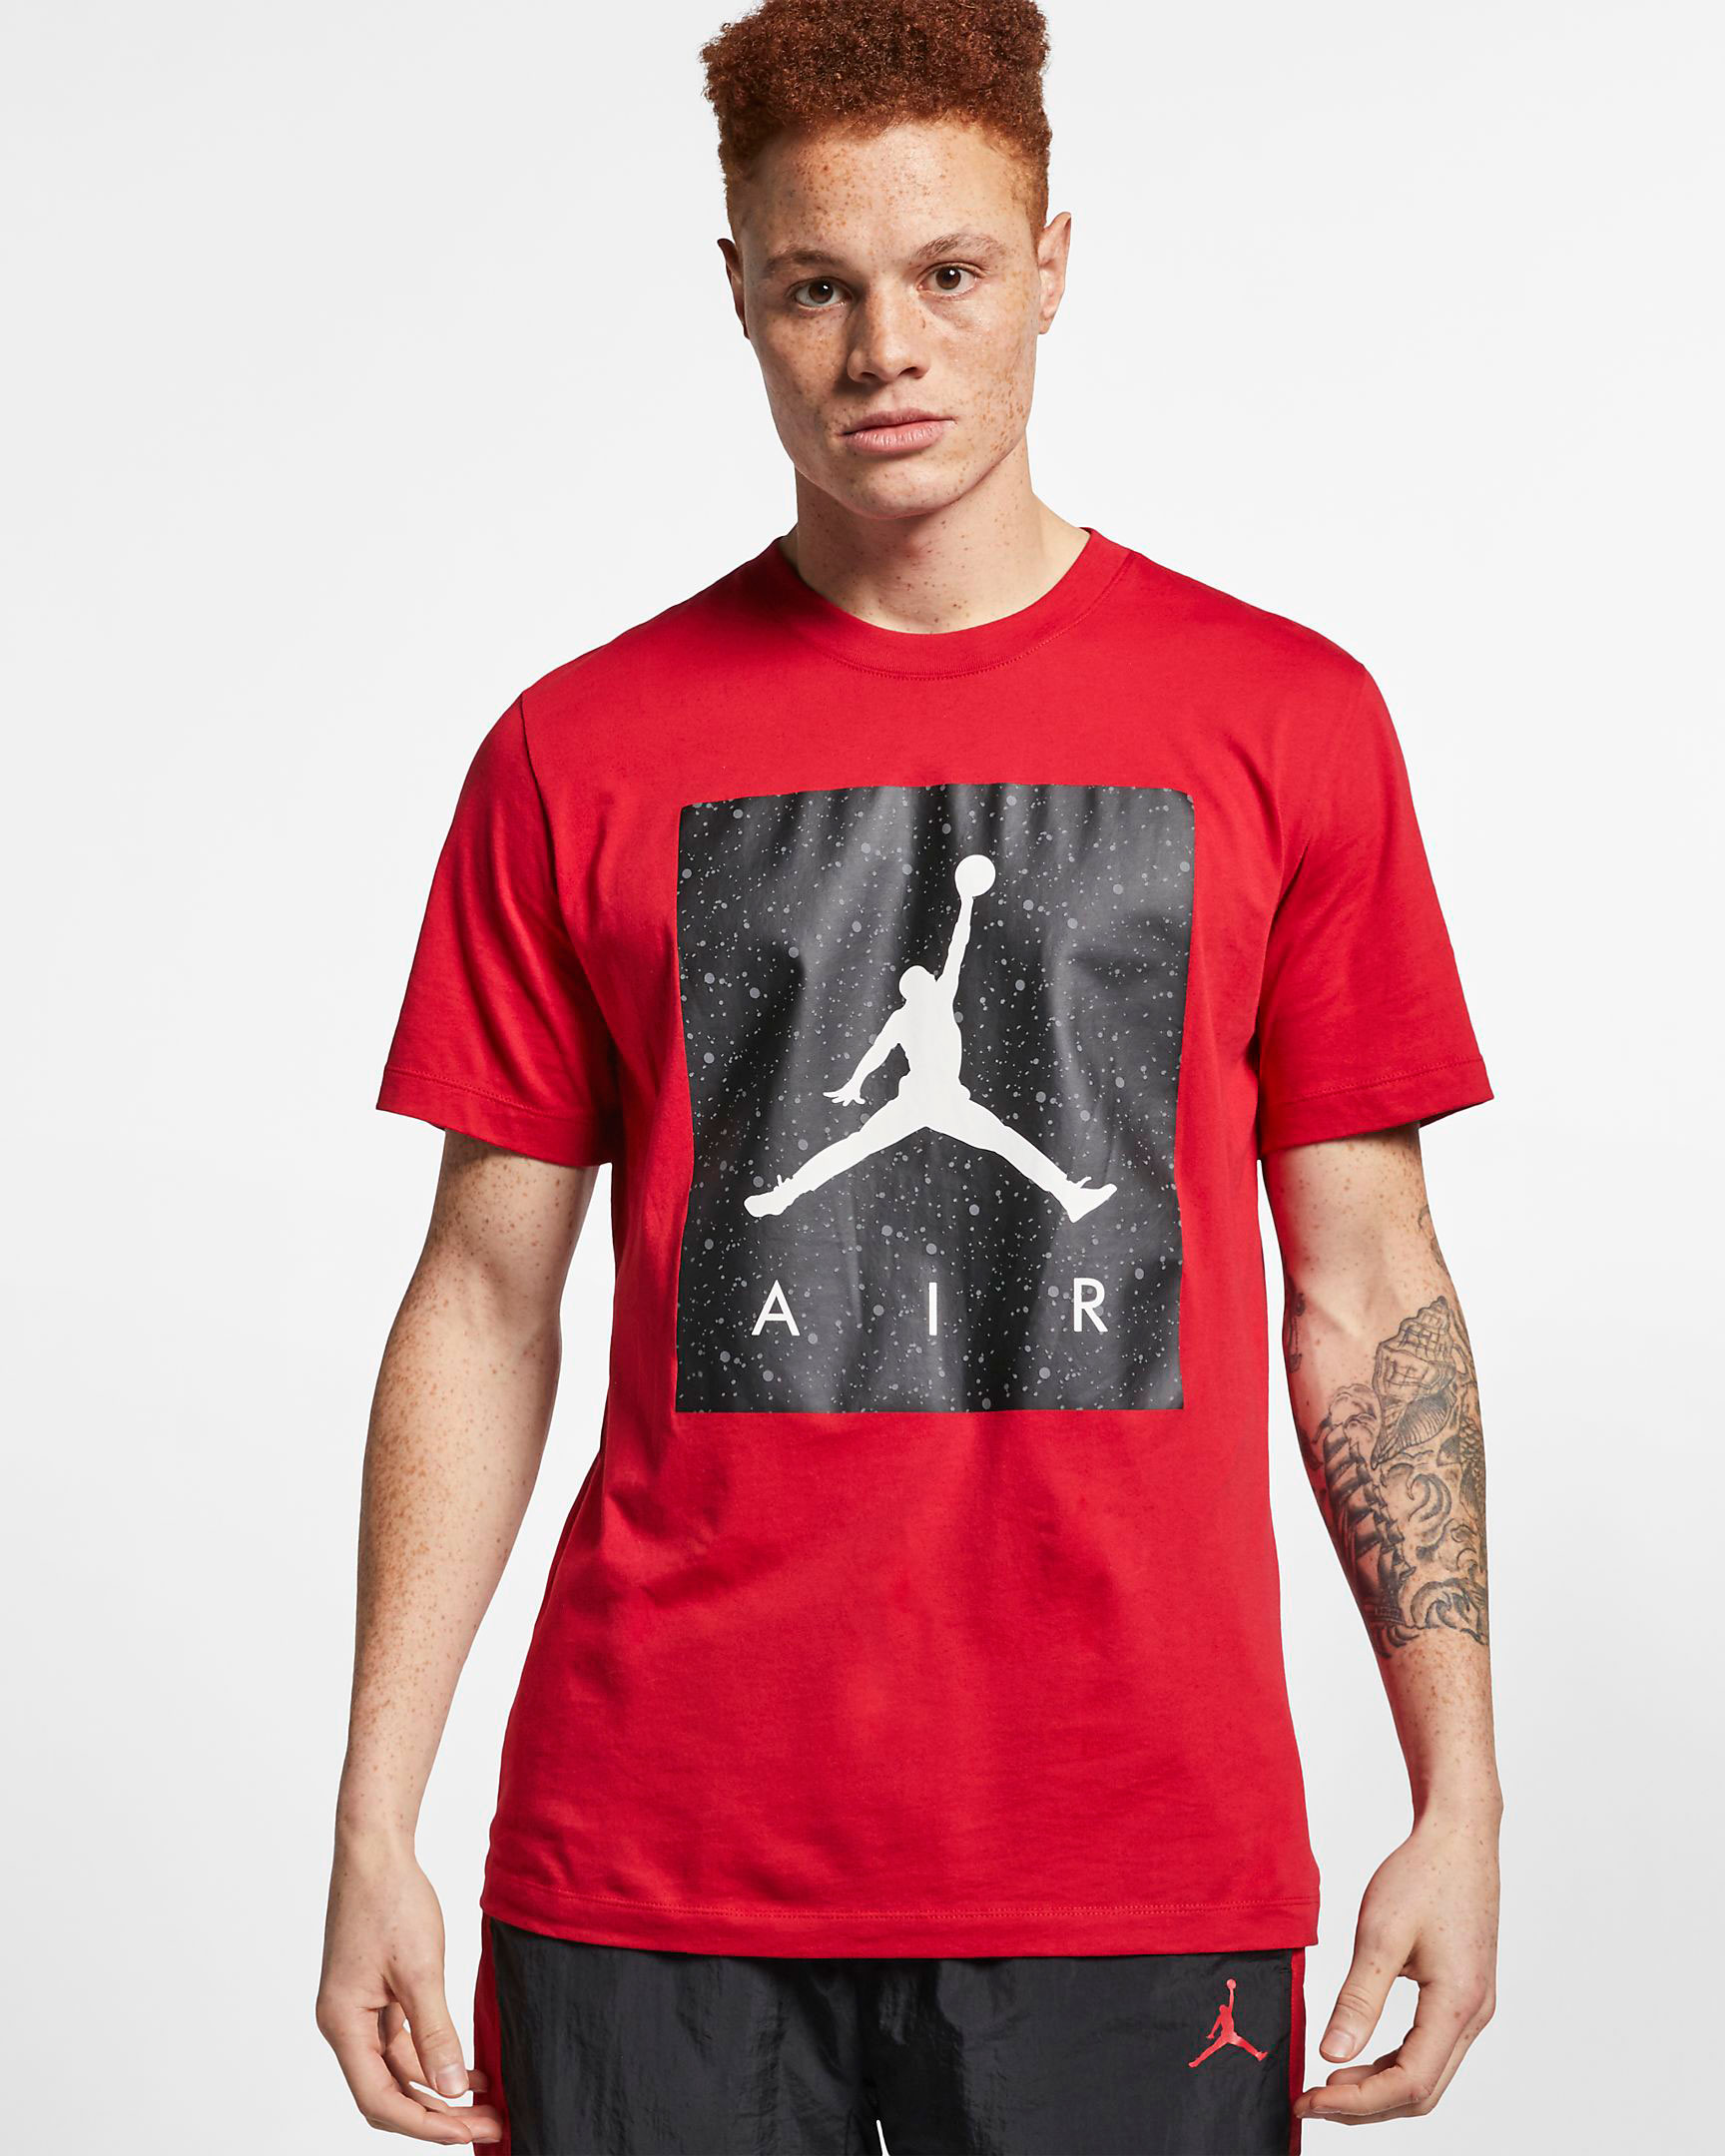 jordan-poolside-summer-shirt-5